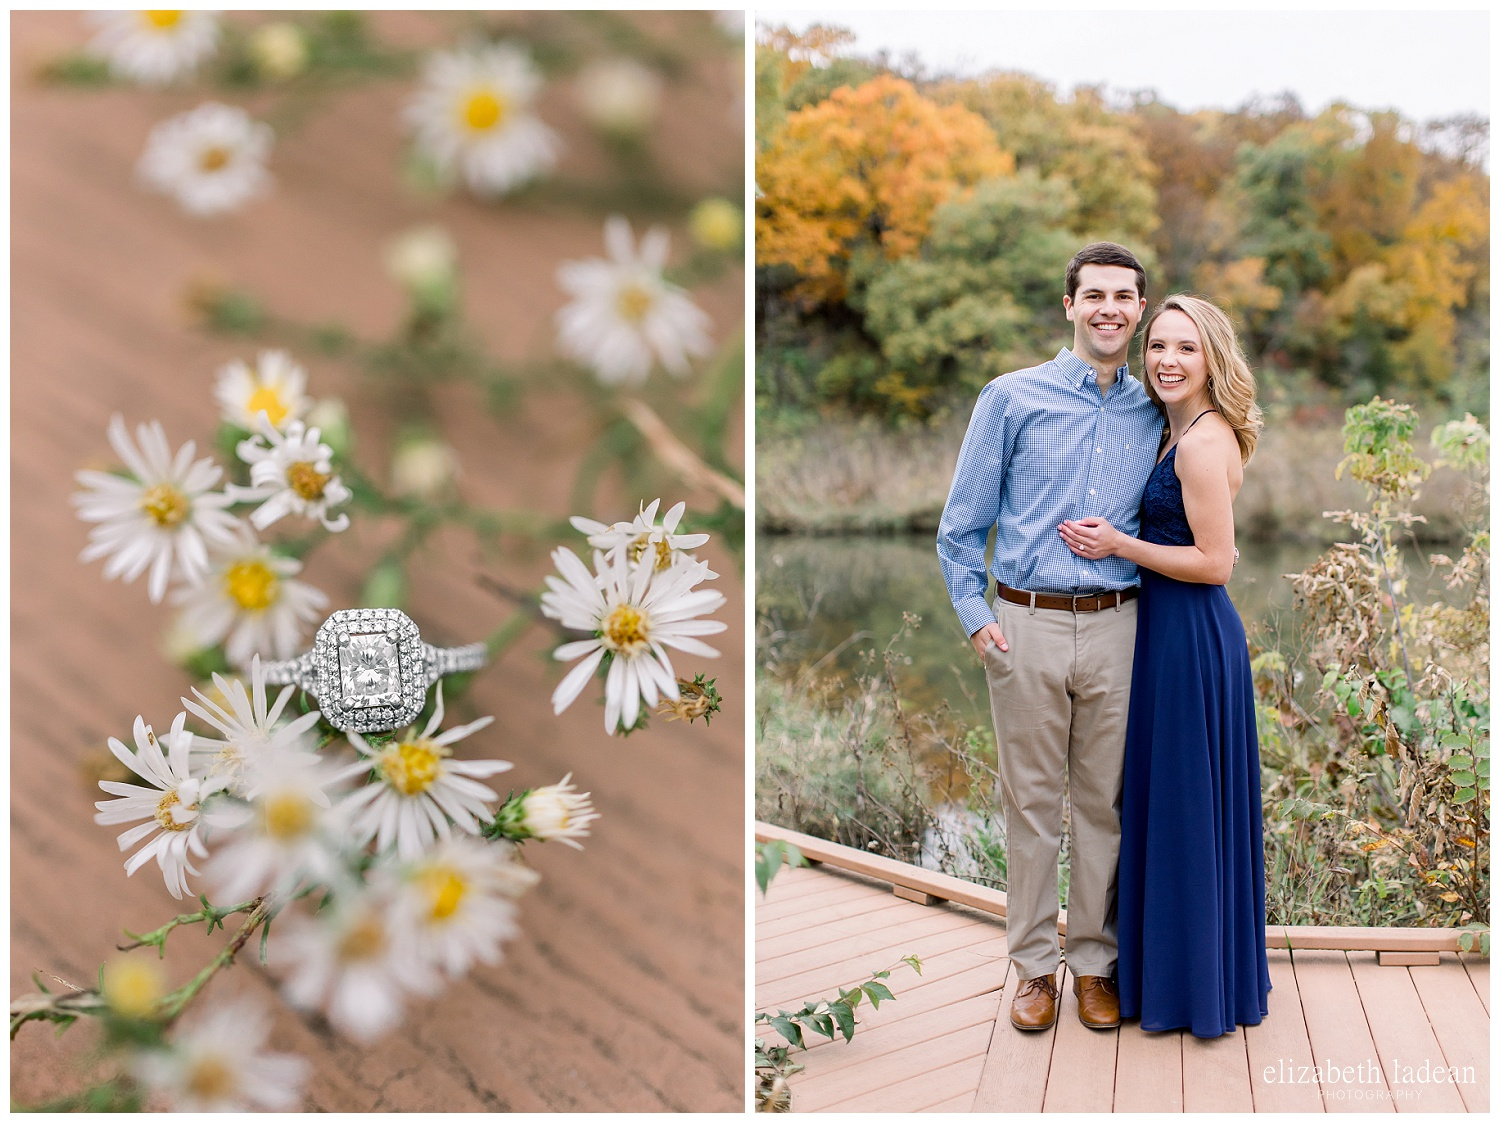 Colorful-Fall-Engagement-Photos-in-KC-C+B-2018-elizabeth-ladean-photography-photo_1798.jpg